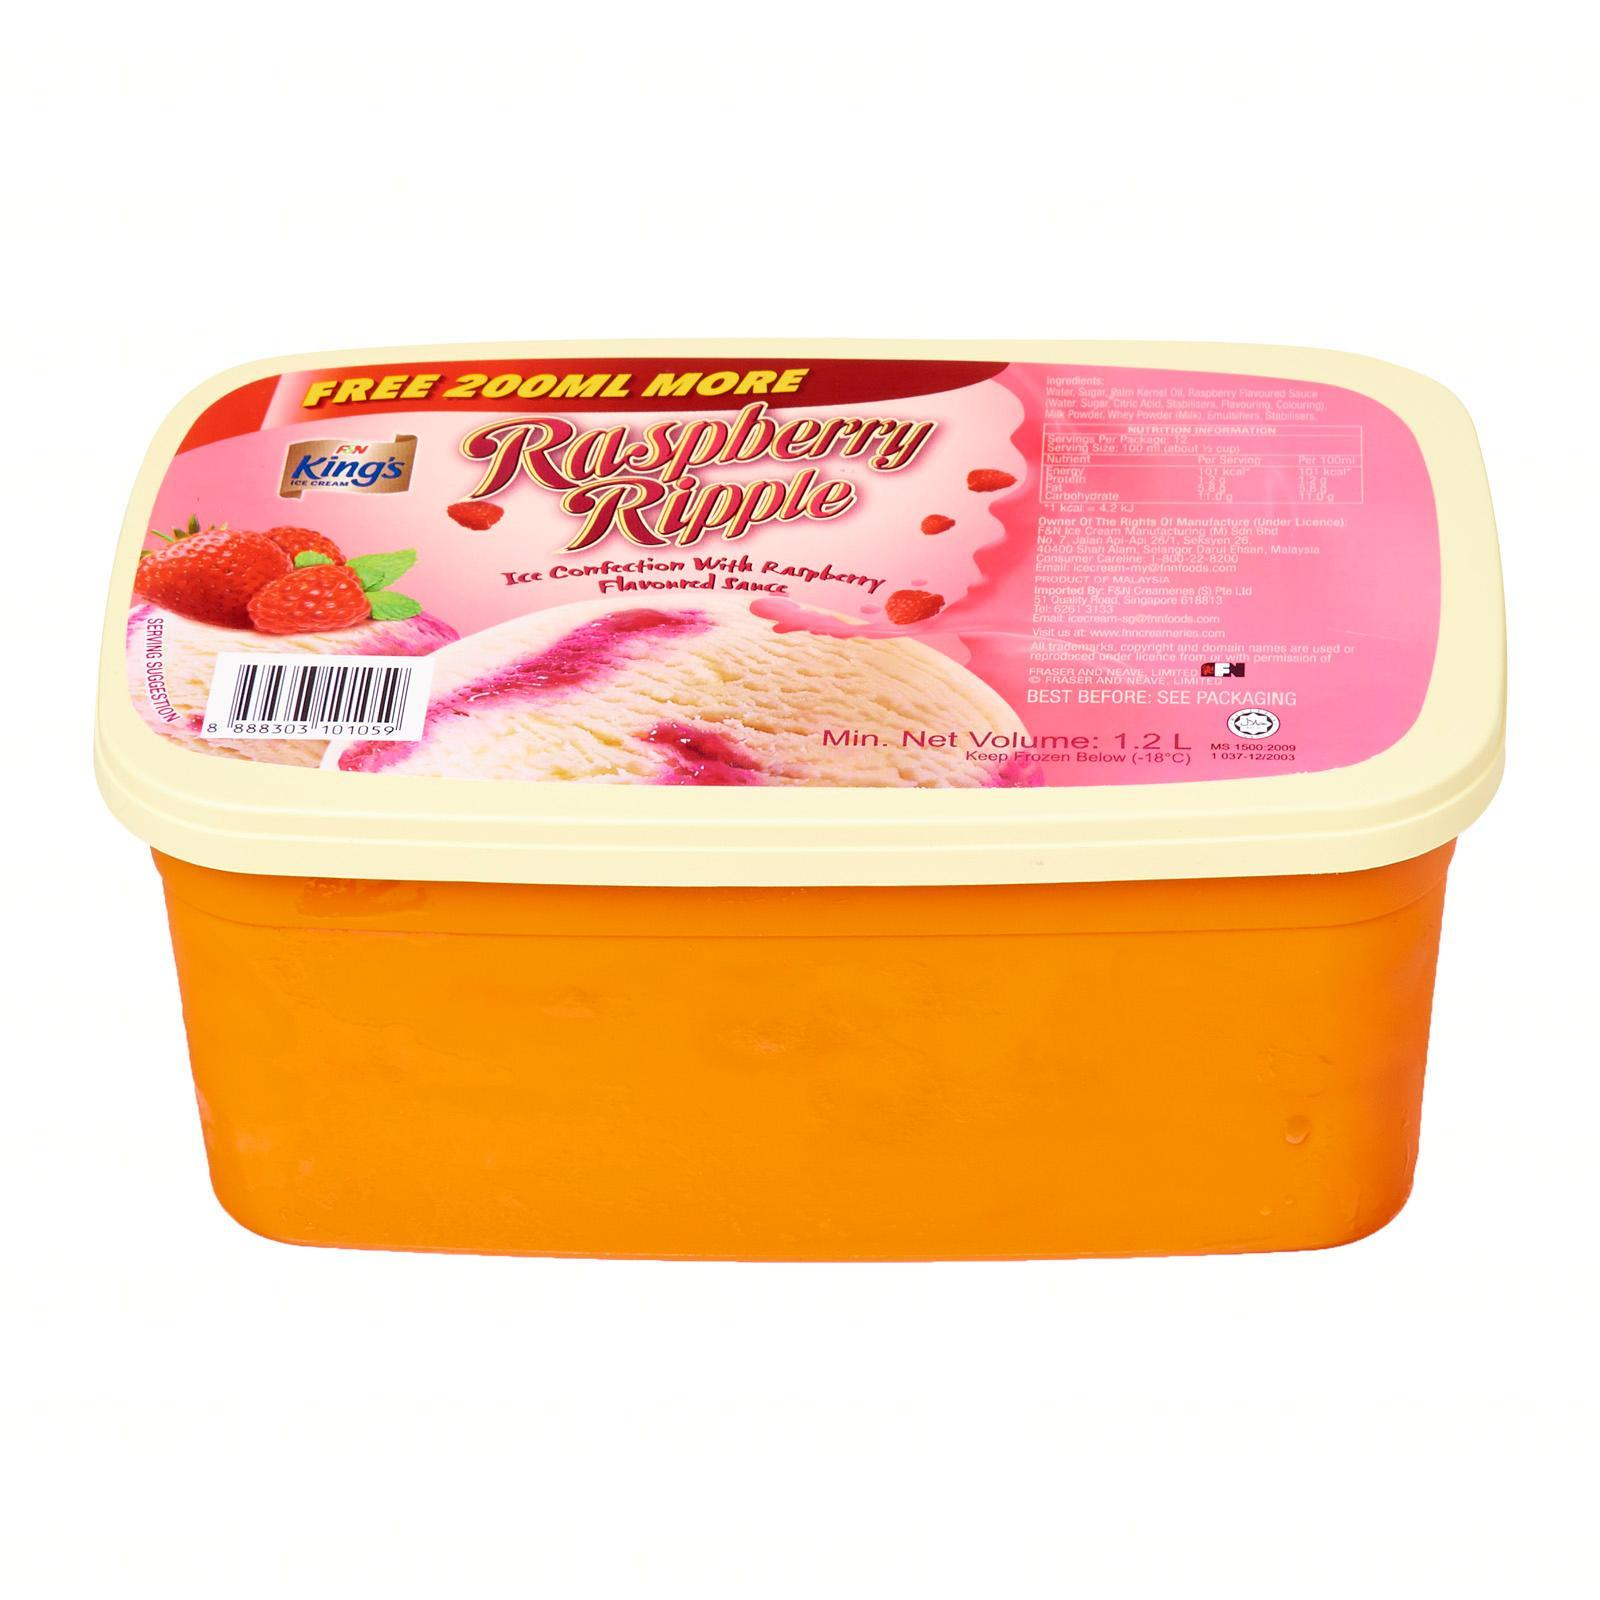 King's Raspberry Ripple Ice Cream with Raspberry Flavoured Sauce